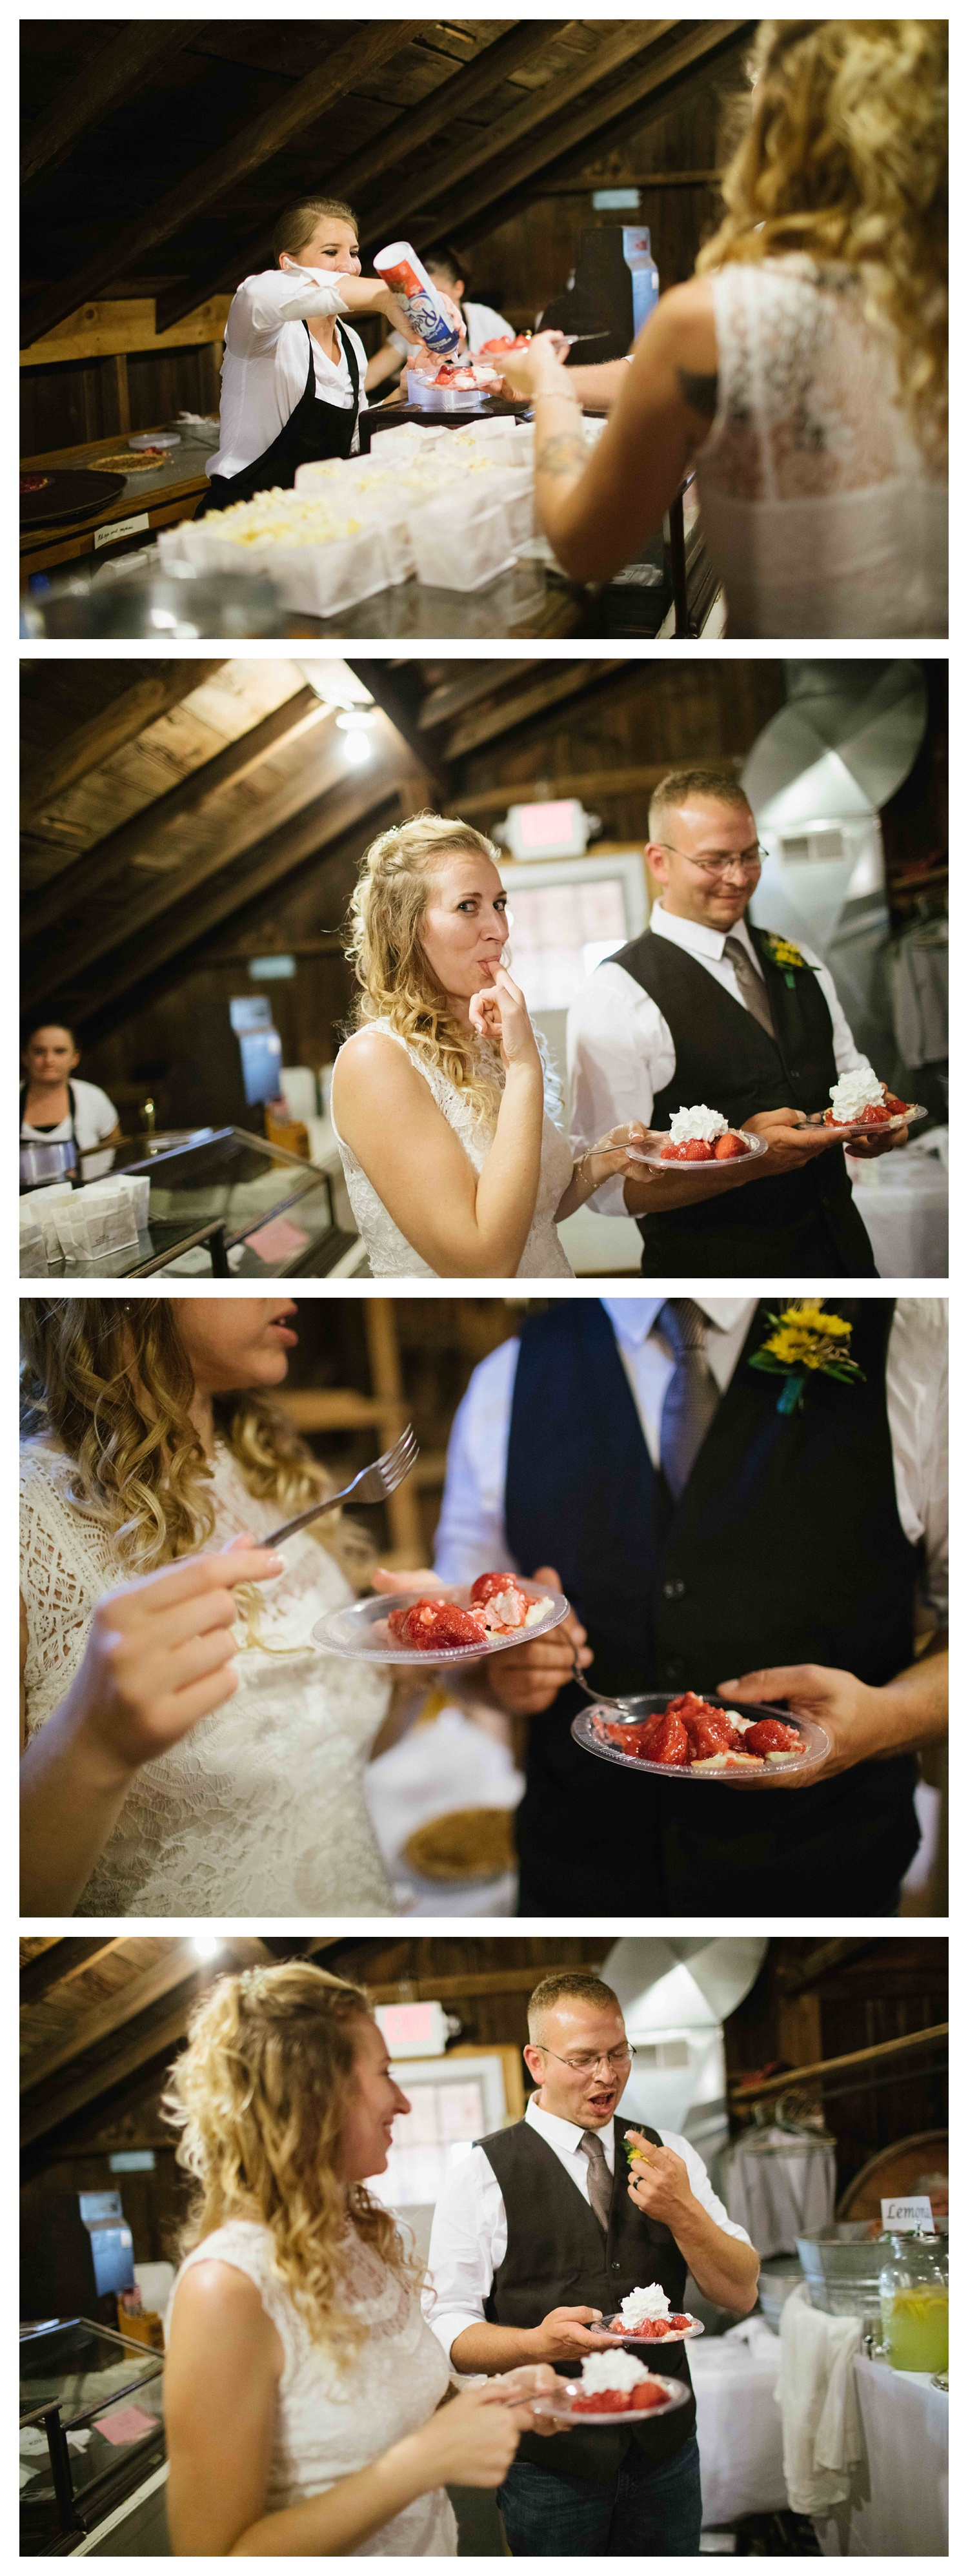 clauson barn wedding photographer chloe ann photography madison wisconsin photographer_0017.jpg